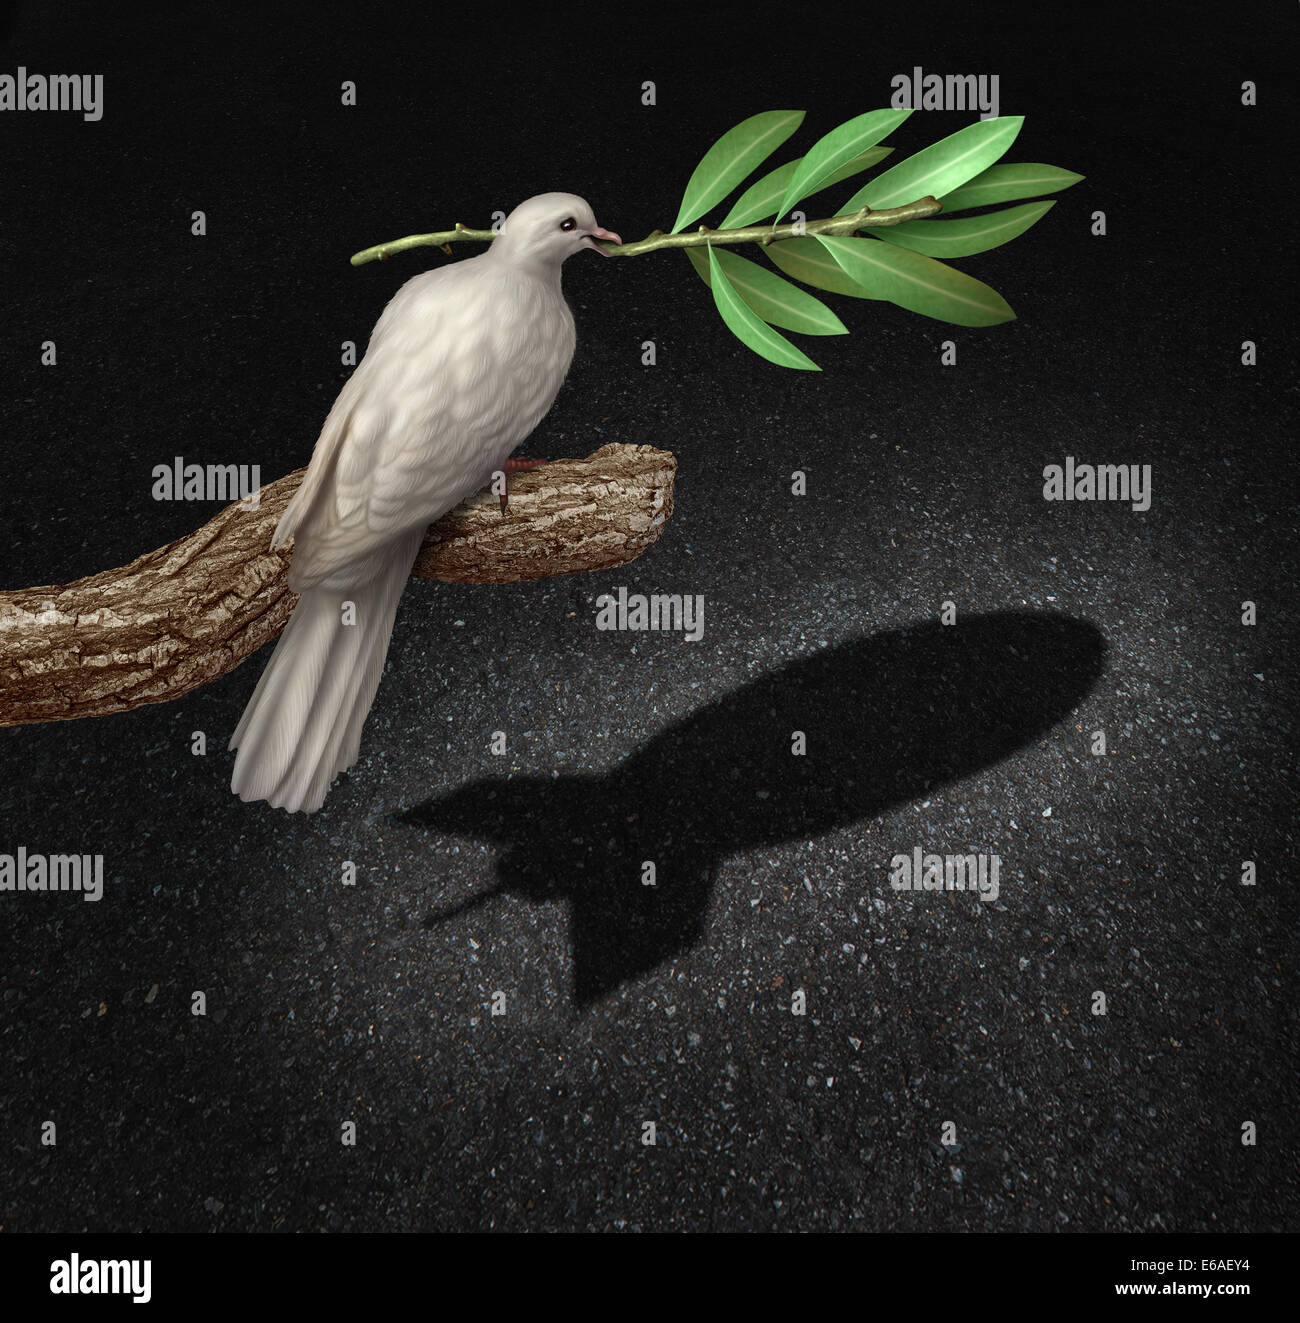 risk of war concept as a freedom peace dove holding an olive branch casting a shadow that is shaped as a bomb as a symbol of the danger of warfare caused by